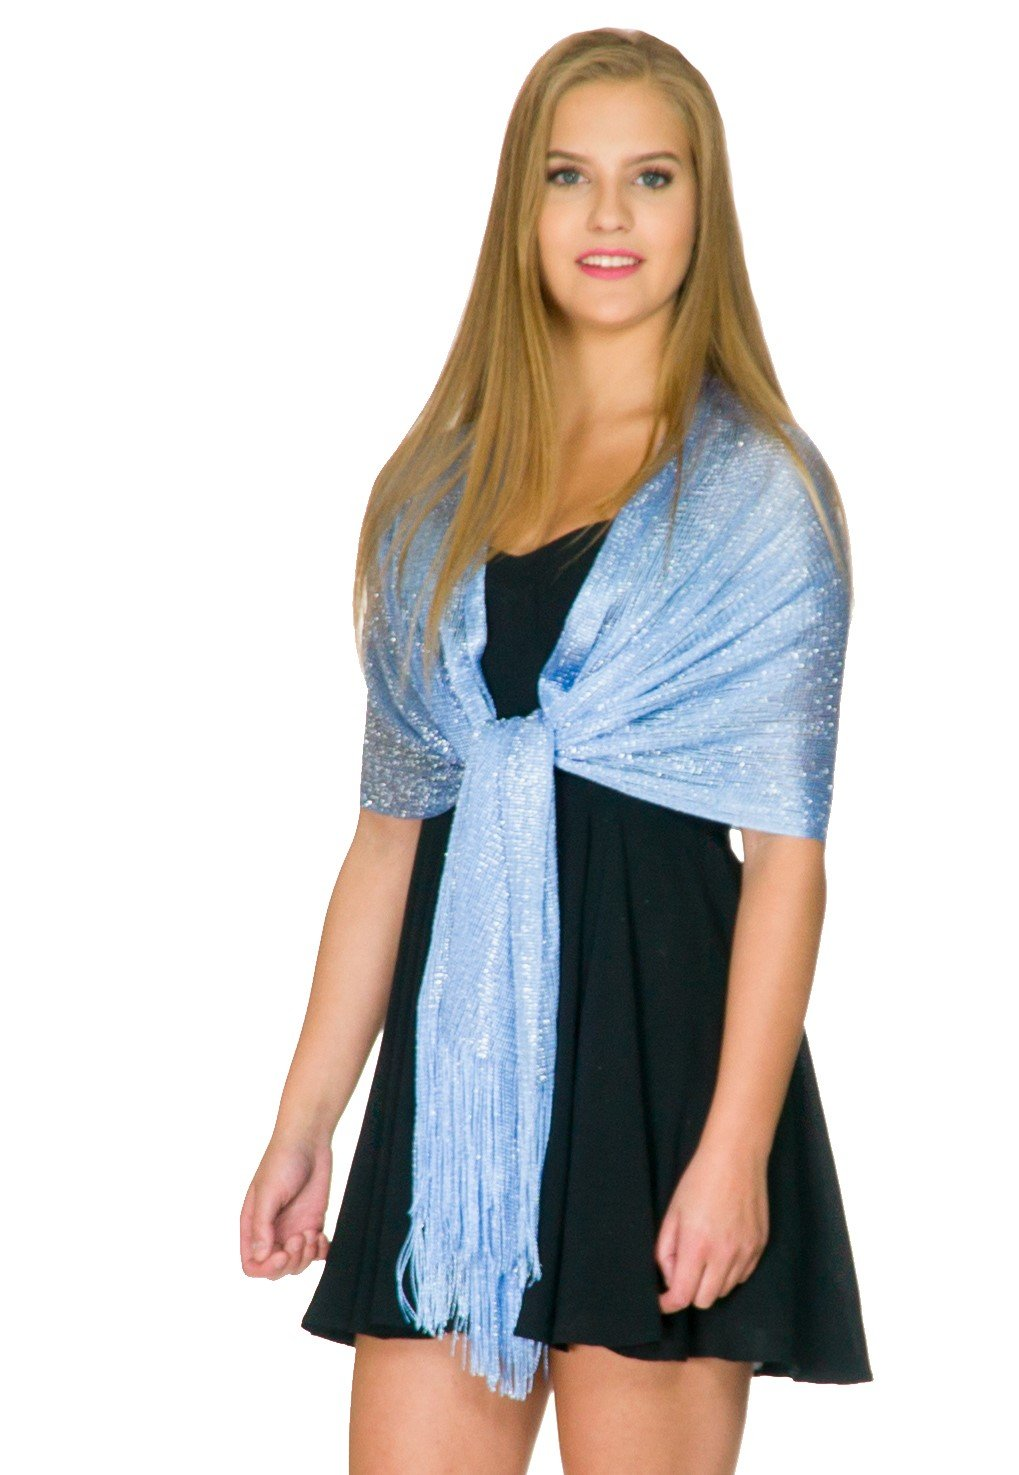 Shawls and Wraps for Evening Dresses, Wedding Shawl Wrap Fringes Scarf for Women Sky Blue